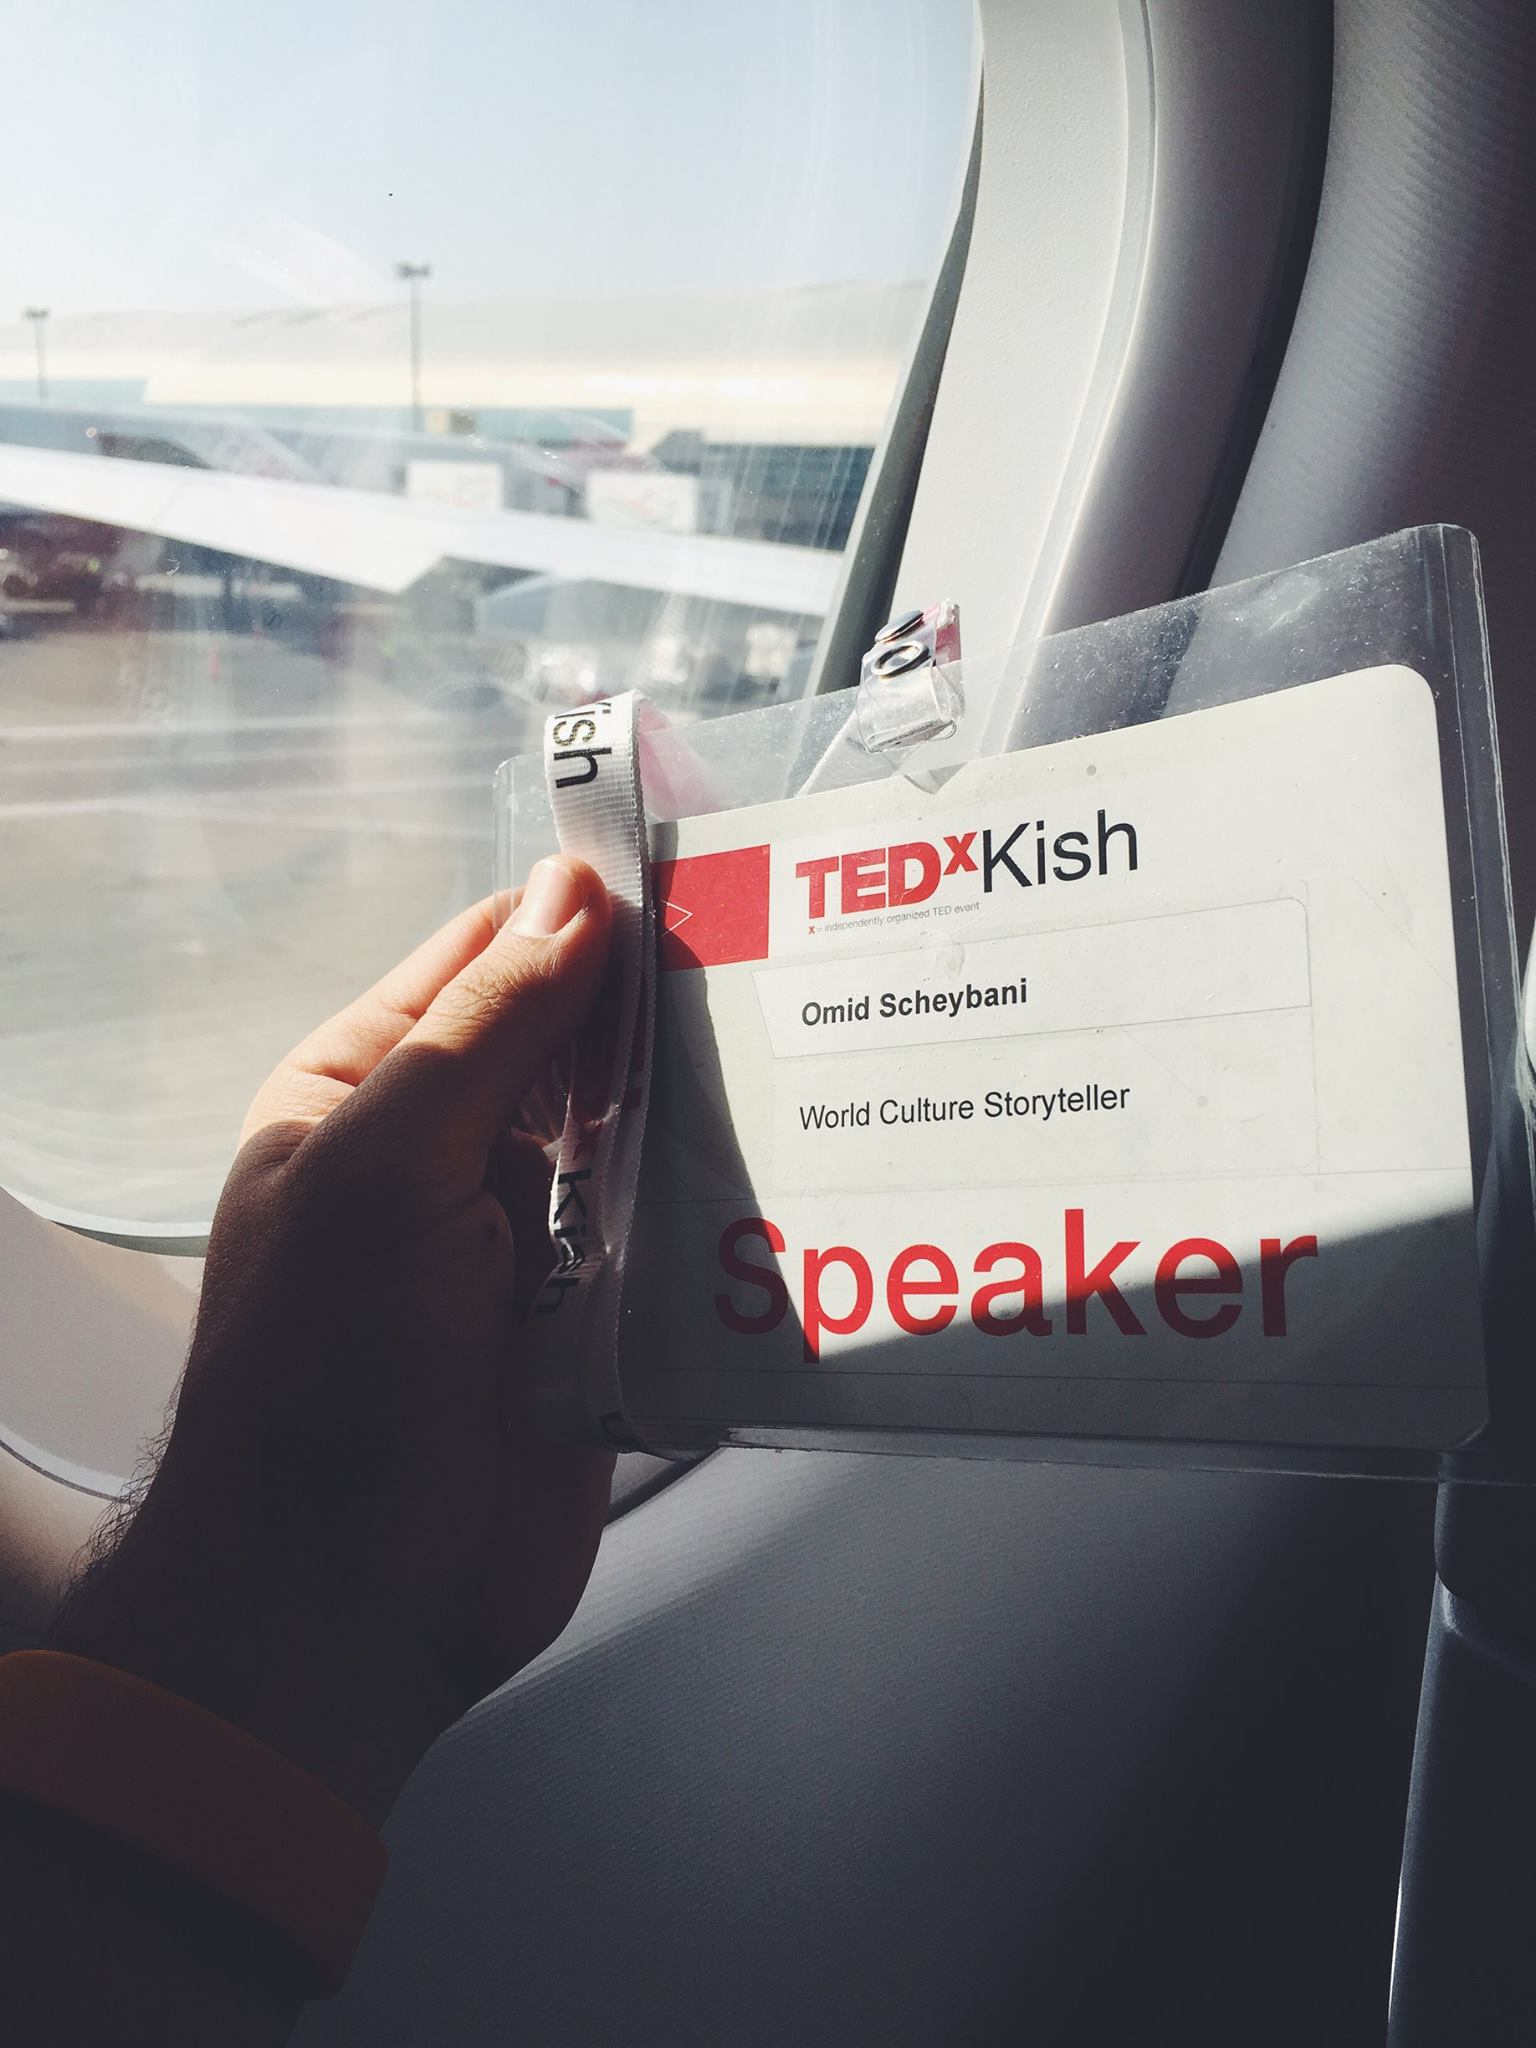 Speaker badge at TEDxKish